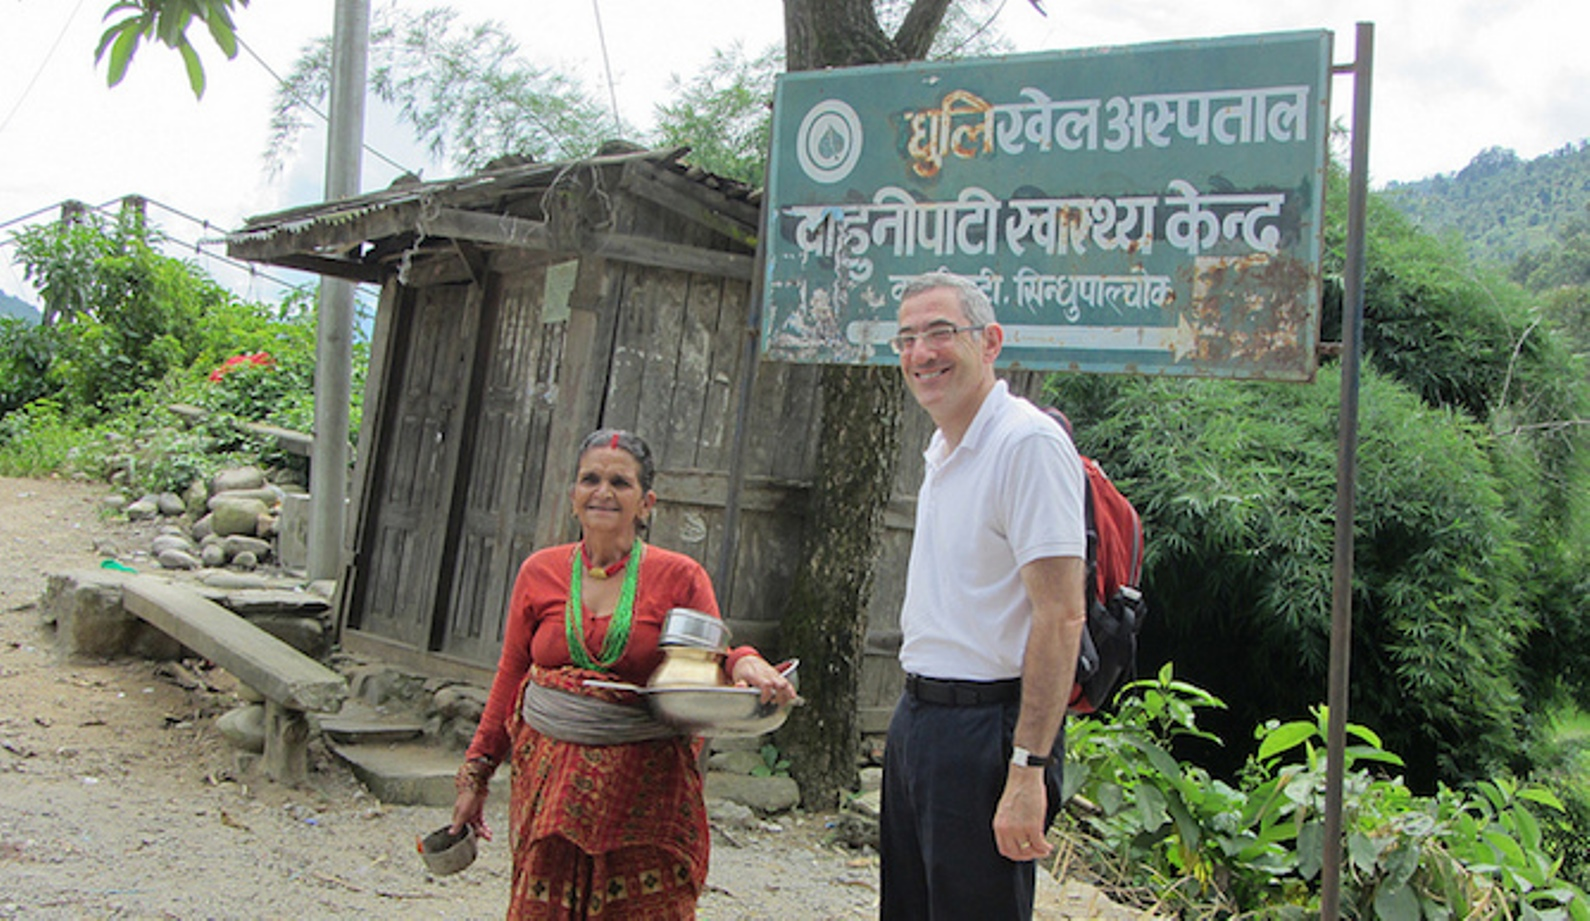 Prof. Yehuda Neumark from the School of Public Health inaugurating a public-health project in 2011 in Kathmandu. Photo: courtesy